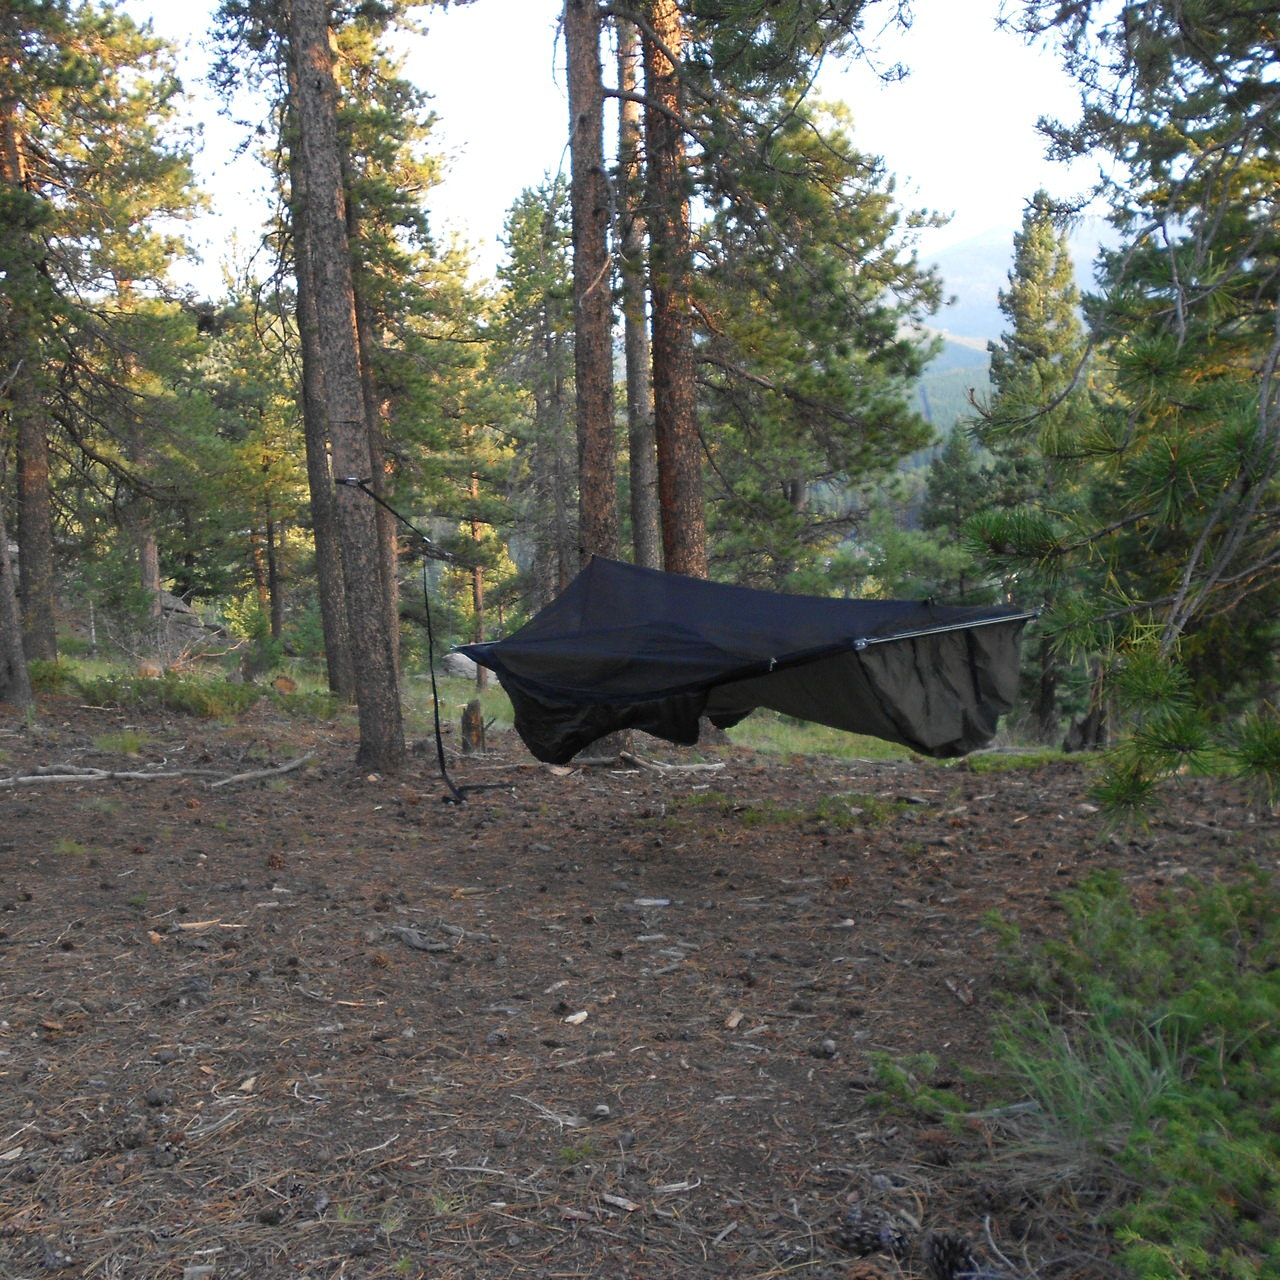 Flat Sleeping Hammock | Ridgerunner | Warbonnet Outdoors Warbonnet Outdoors